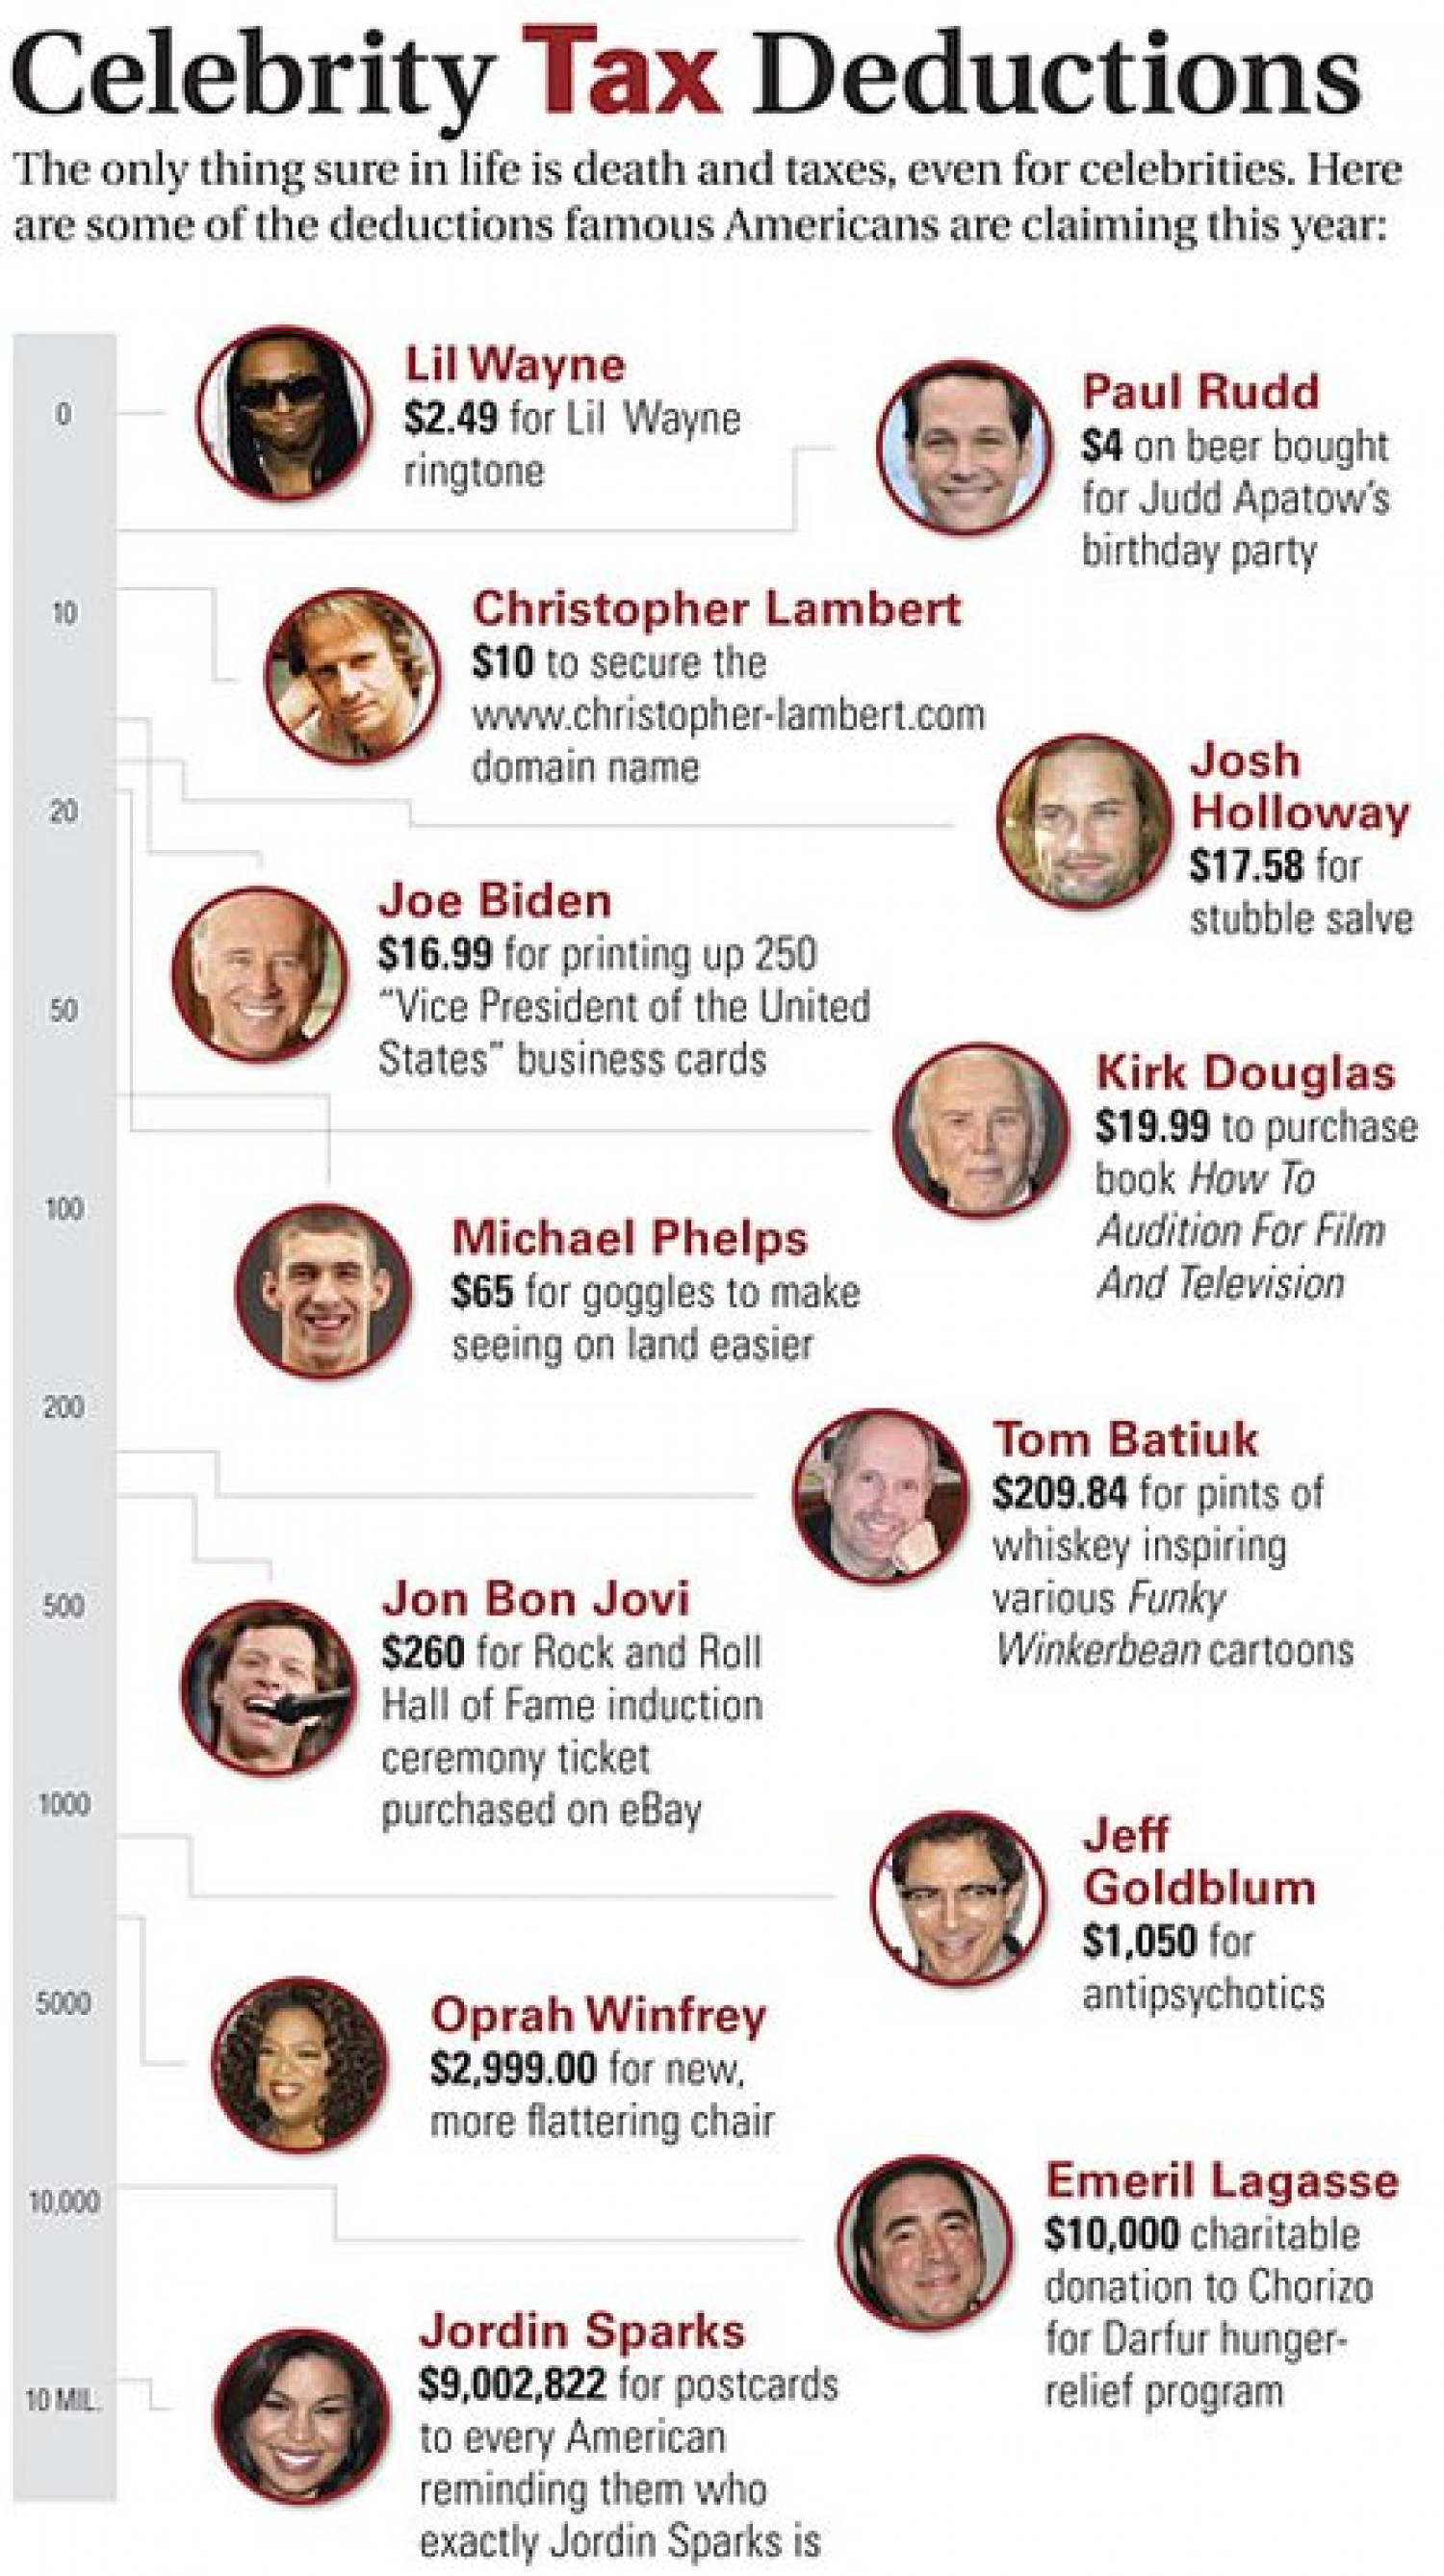 Celebrity Tax Deductions Infographic